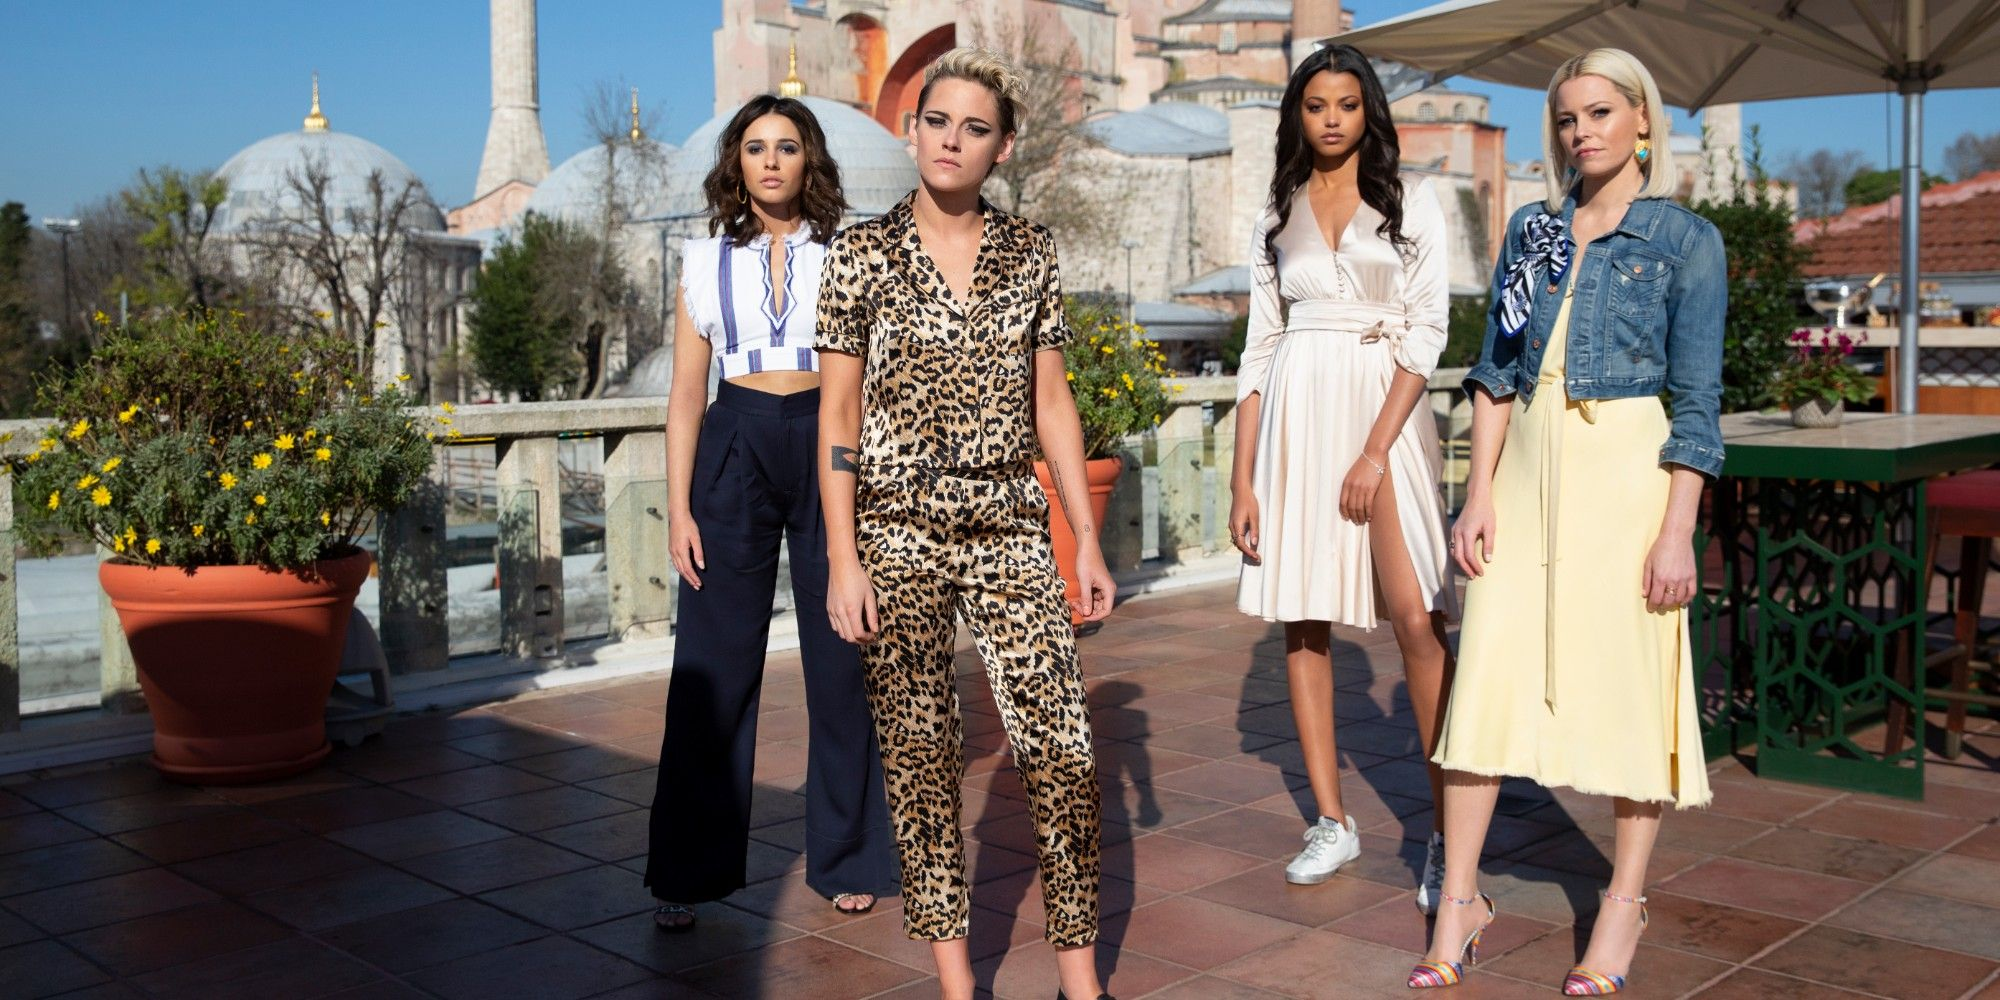 Charlie's Angels (2019) Movie Trailer 2 Introduces the New Angels